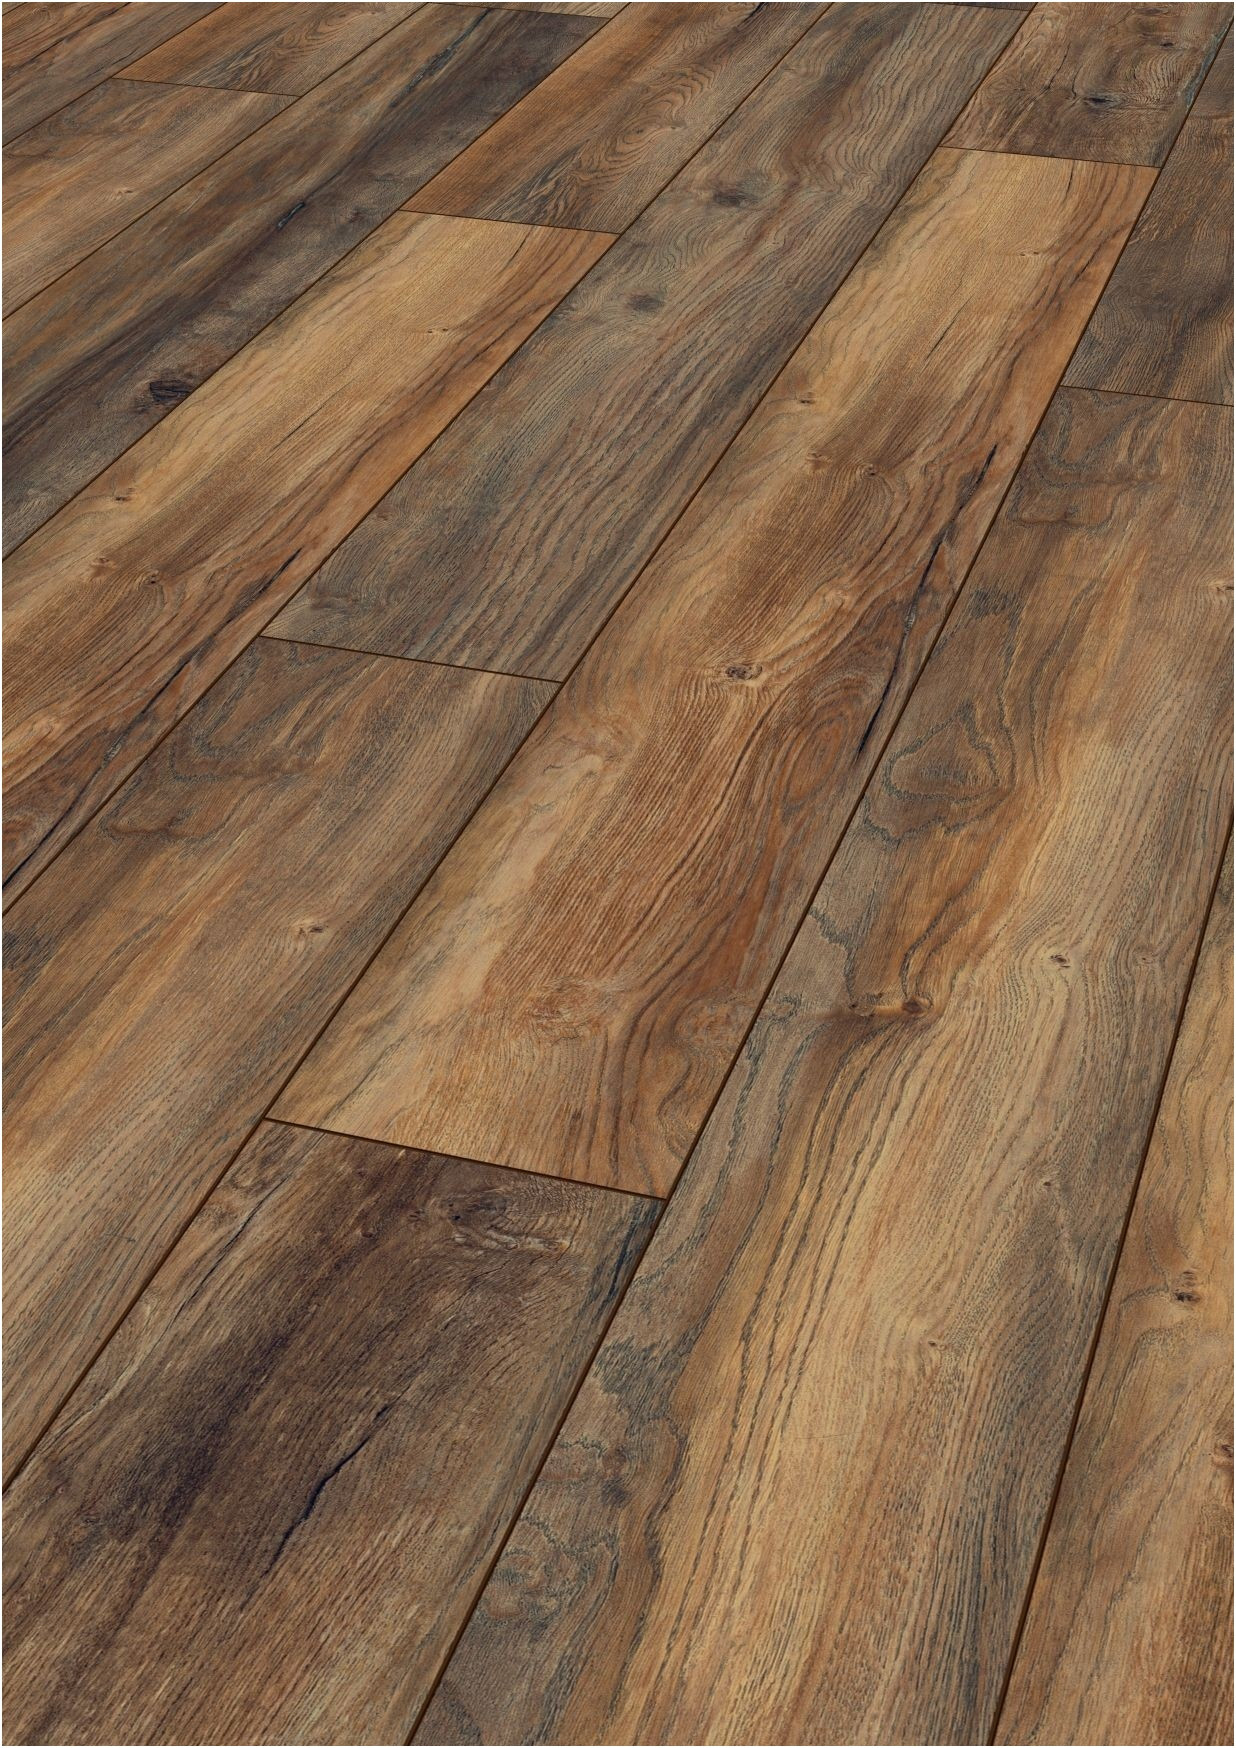 hardwood flooring ct of how to make wood flooring fresh gray hardwood floor lovely gray throughout how to make wood flooring fresh gray hardwood floor lovely gray minwax stains red oak wood